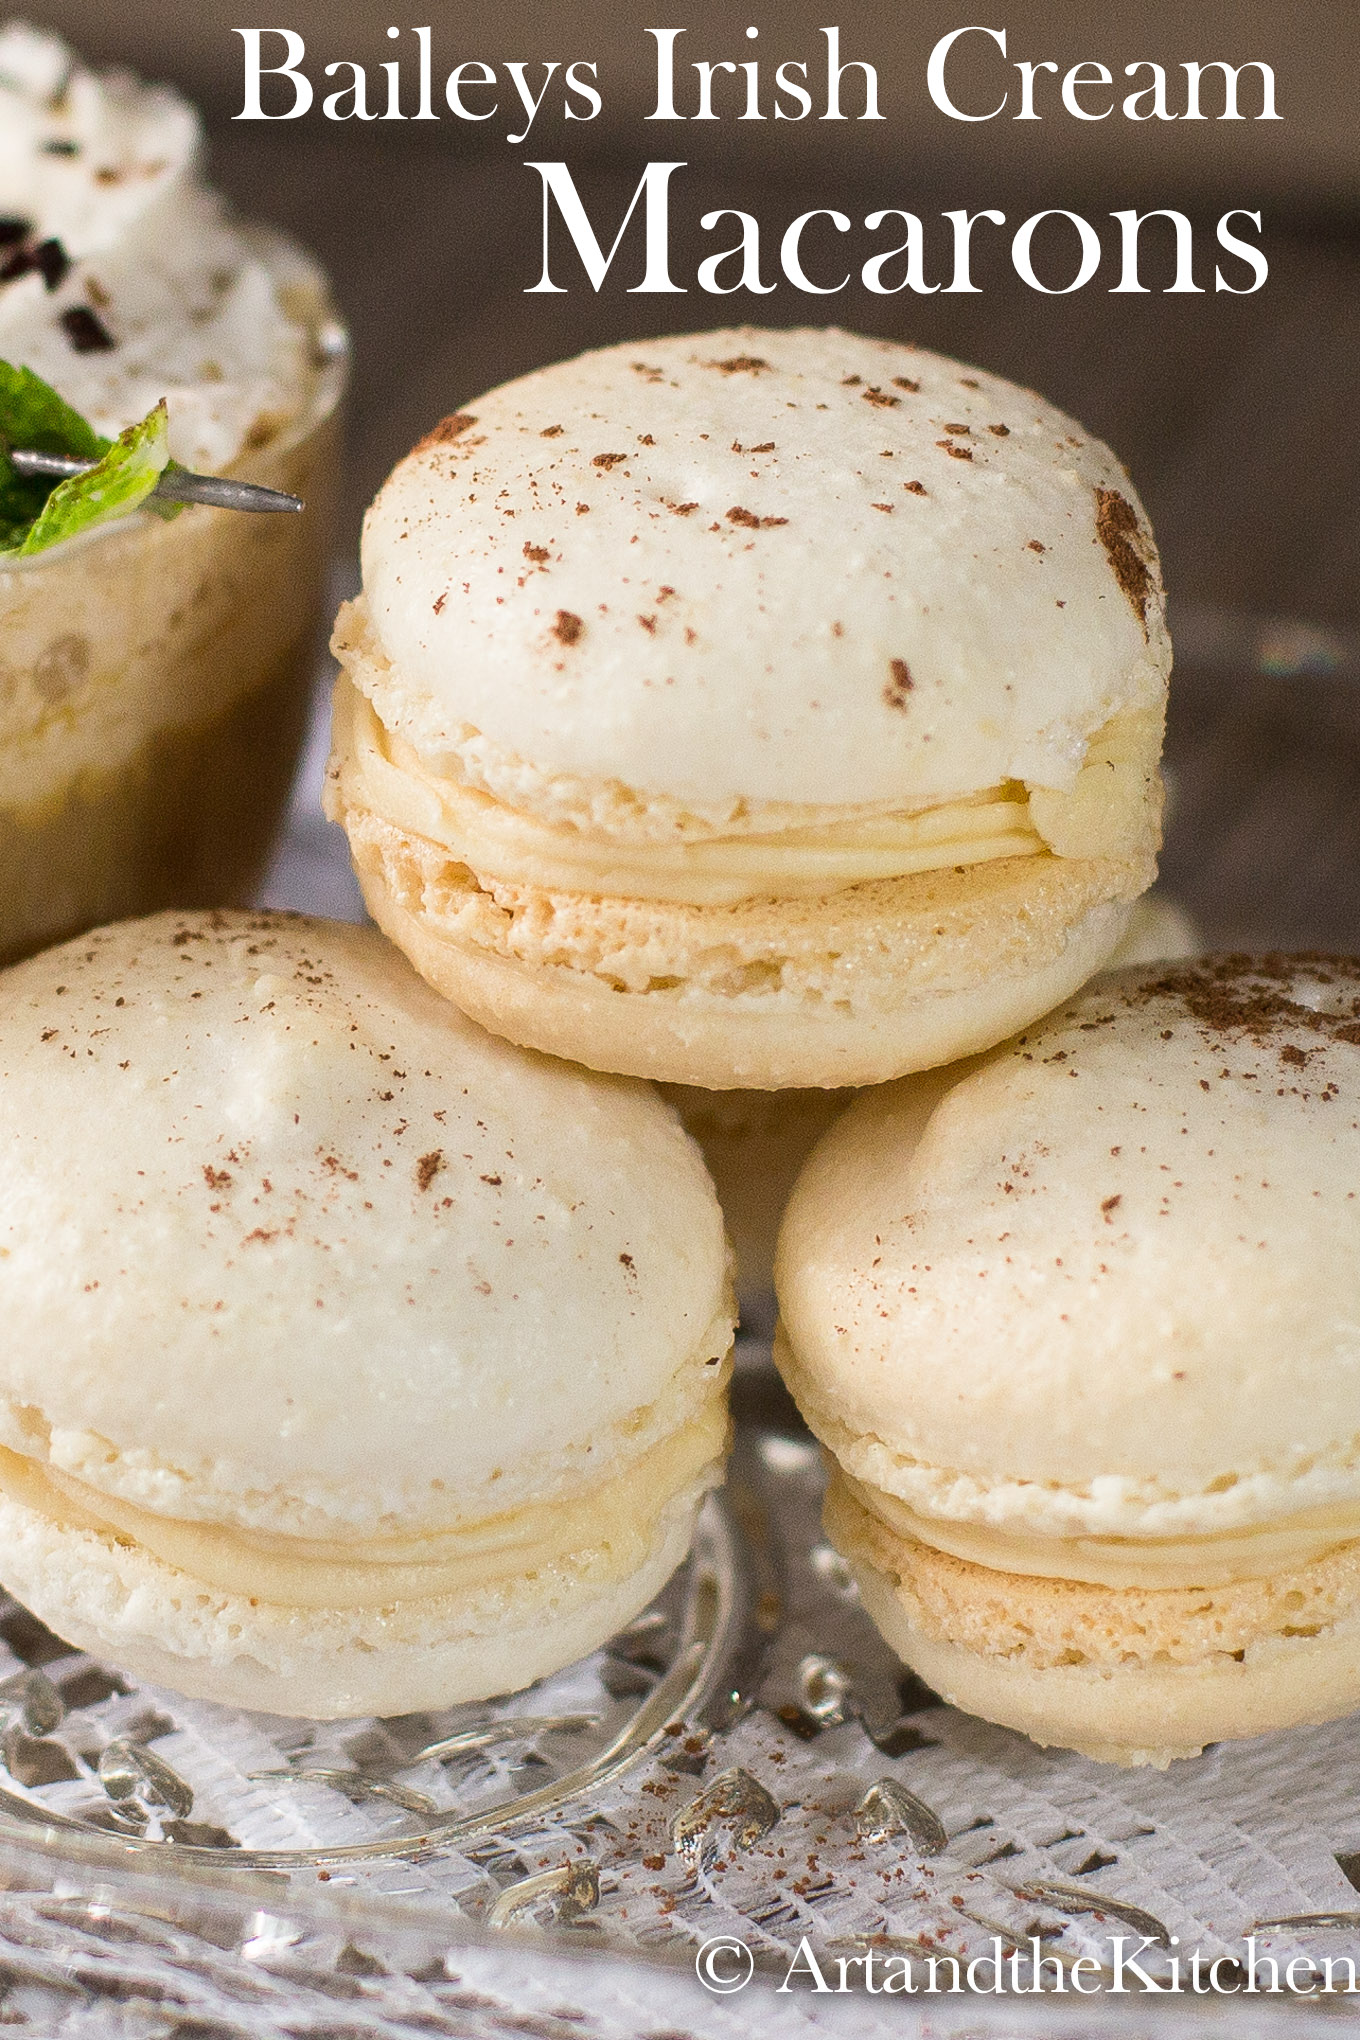 This is a scrumptious recipe for Baileys Irish Cream Macarons. Easy to follow recipe for perfect macarons!